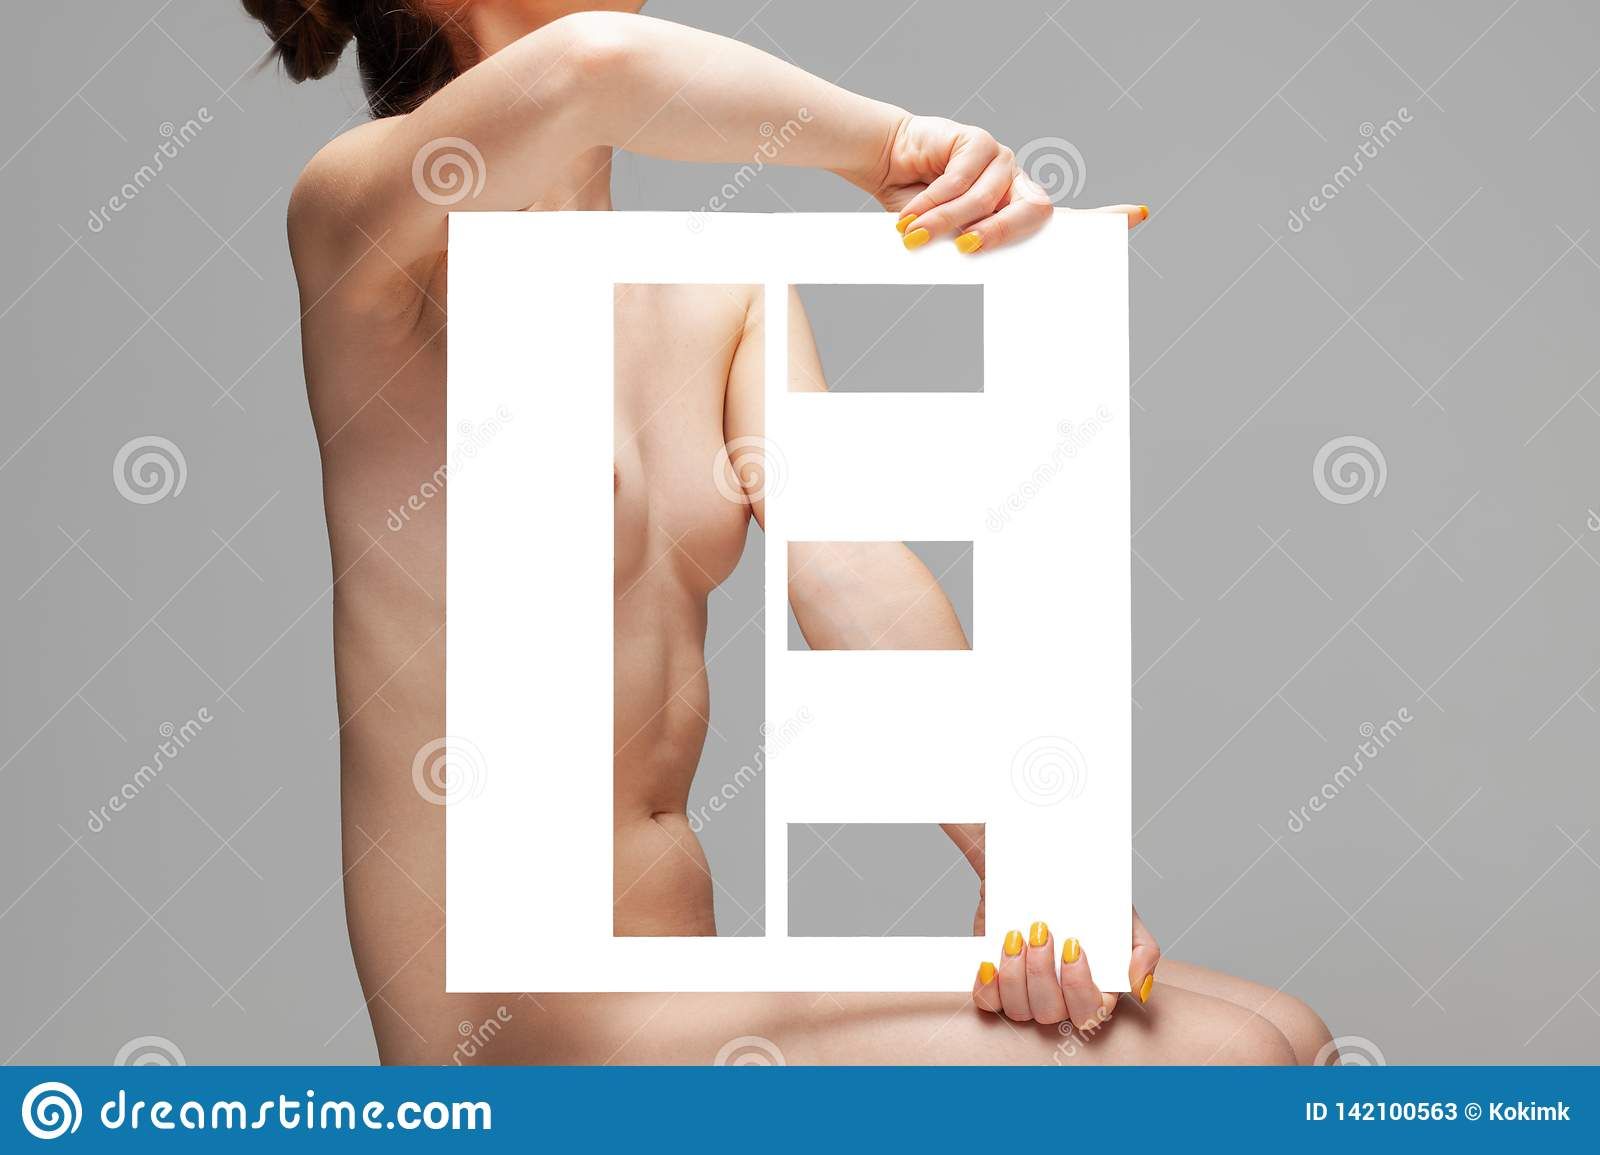 Naked girl text pics Nude Girl Holding Stencil Letter E Stock Image Image Of Glamour Lady 142100563